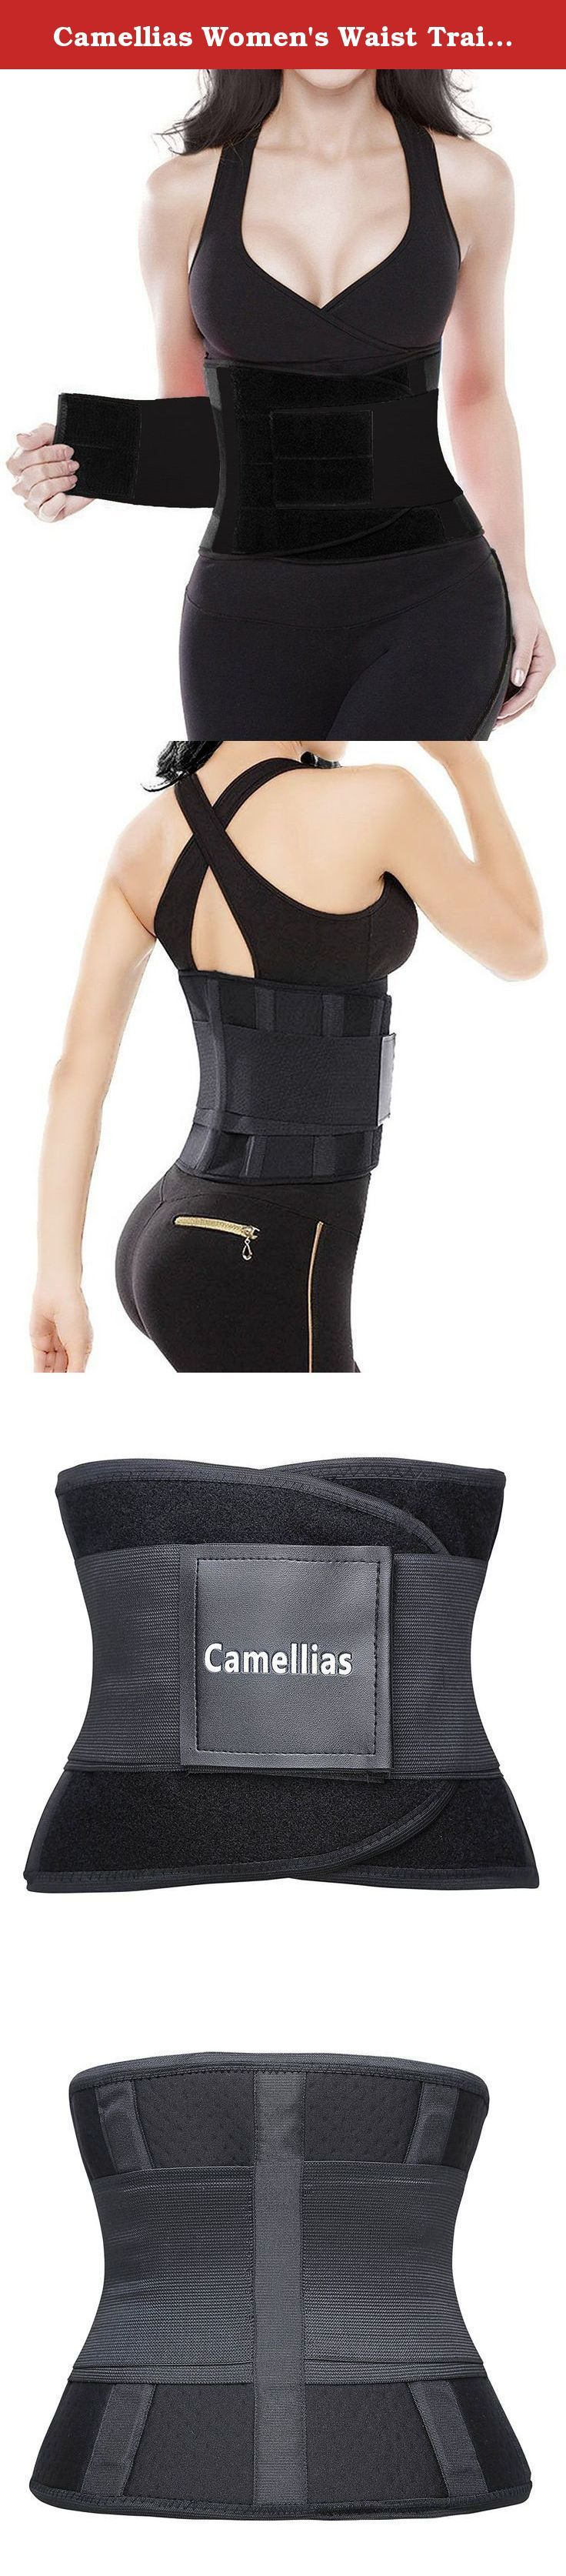 Camellias Women's Waist Trainer Belt - Body Shaper Belt For An Hourglass Shaper, SZ8002-Black-M. Looking for the perfect waist trainer corset cincher for your workout or weight loss? Look no further, this is IT! Camellias waist trainers corset belt workout waist cincher offers support and shaping in beautful form factor. Mesh fabric in the back allows for breathability in your workout while the four acrylic bones provide unparalleled support in a waist cincher with the versatility…